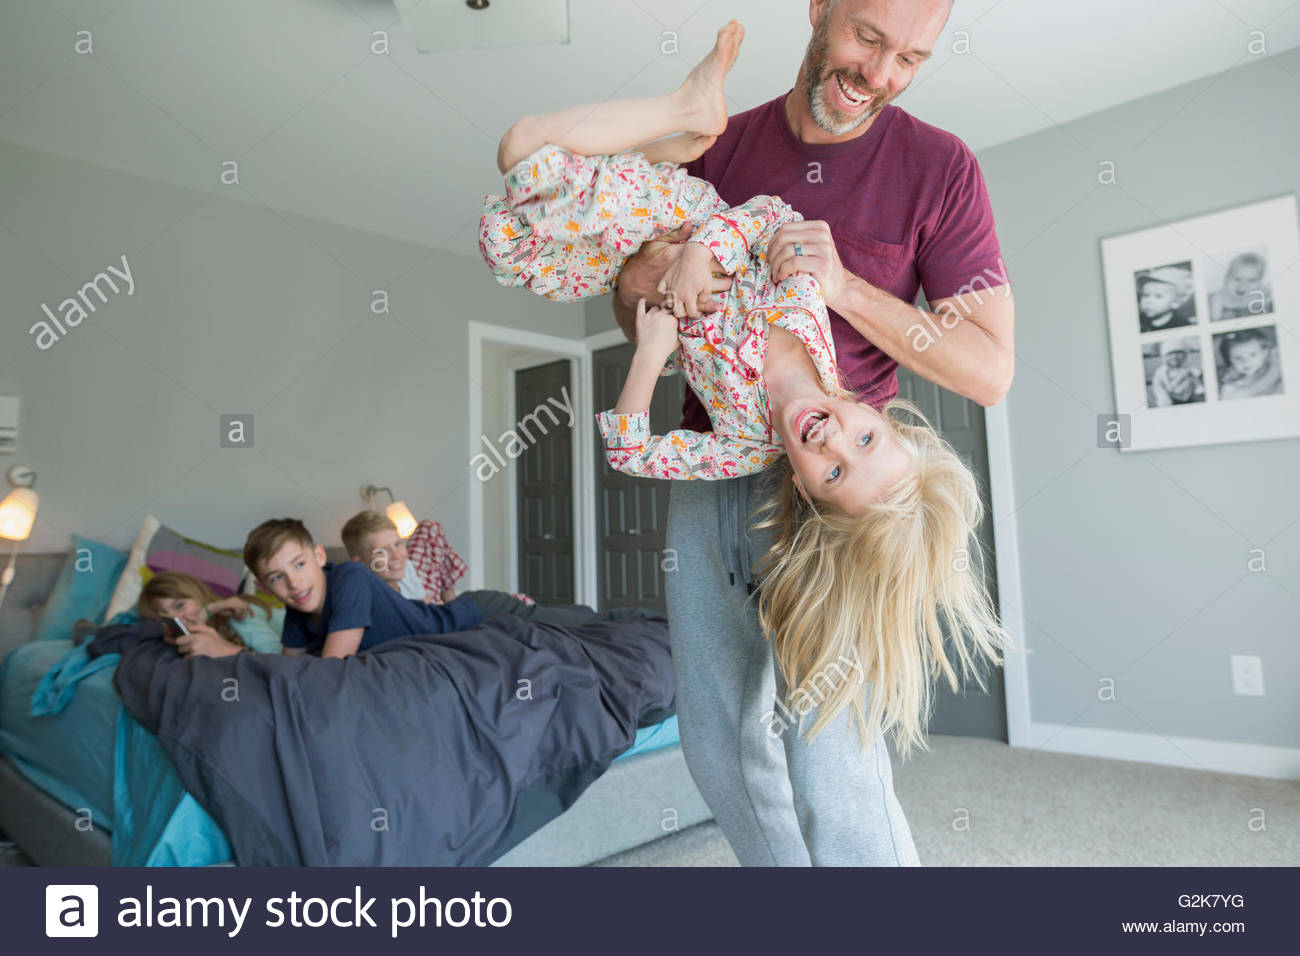 Playful father tickling daughter upside-down in bedroom - Stock Image